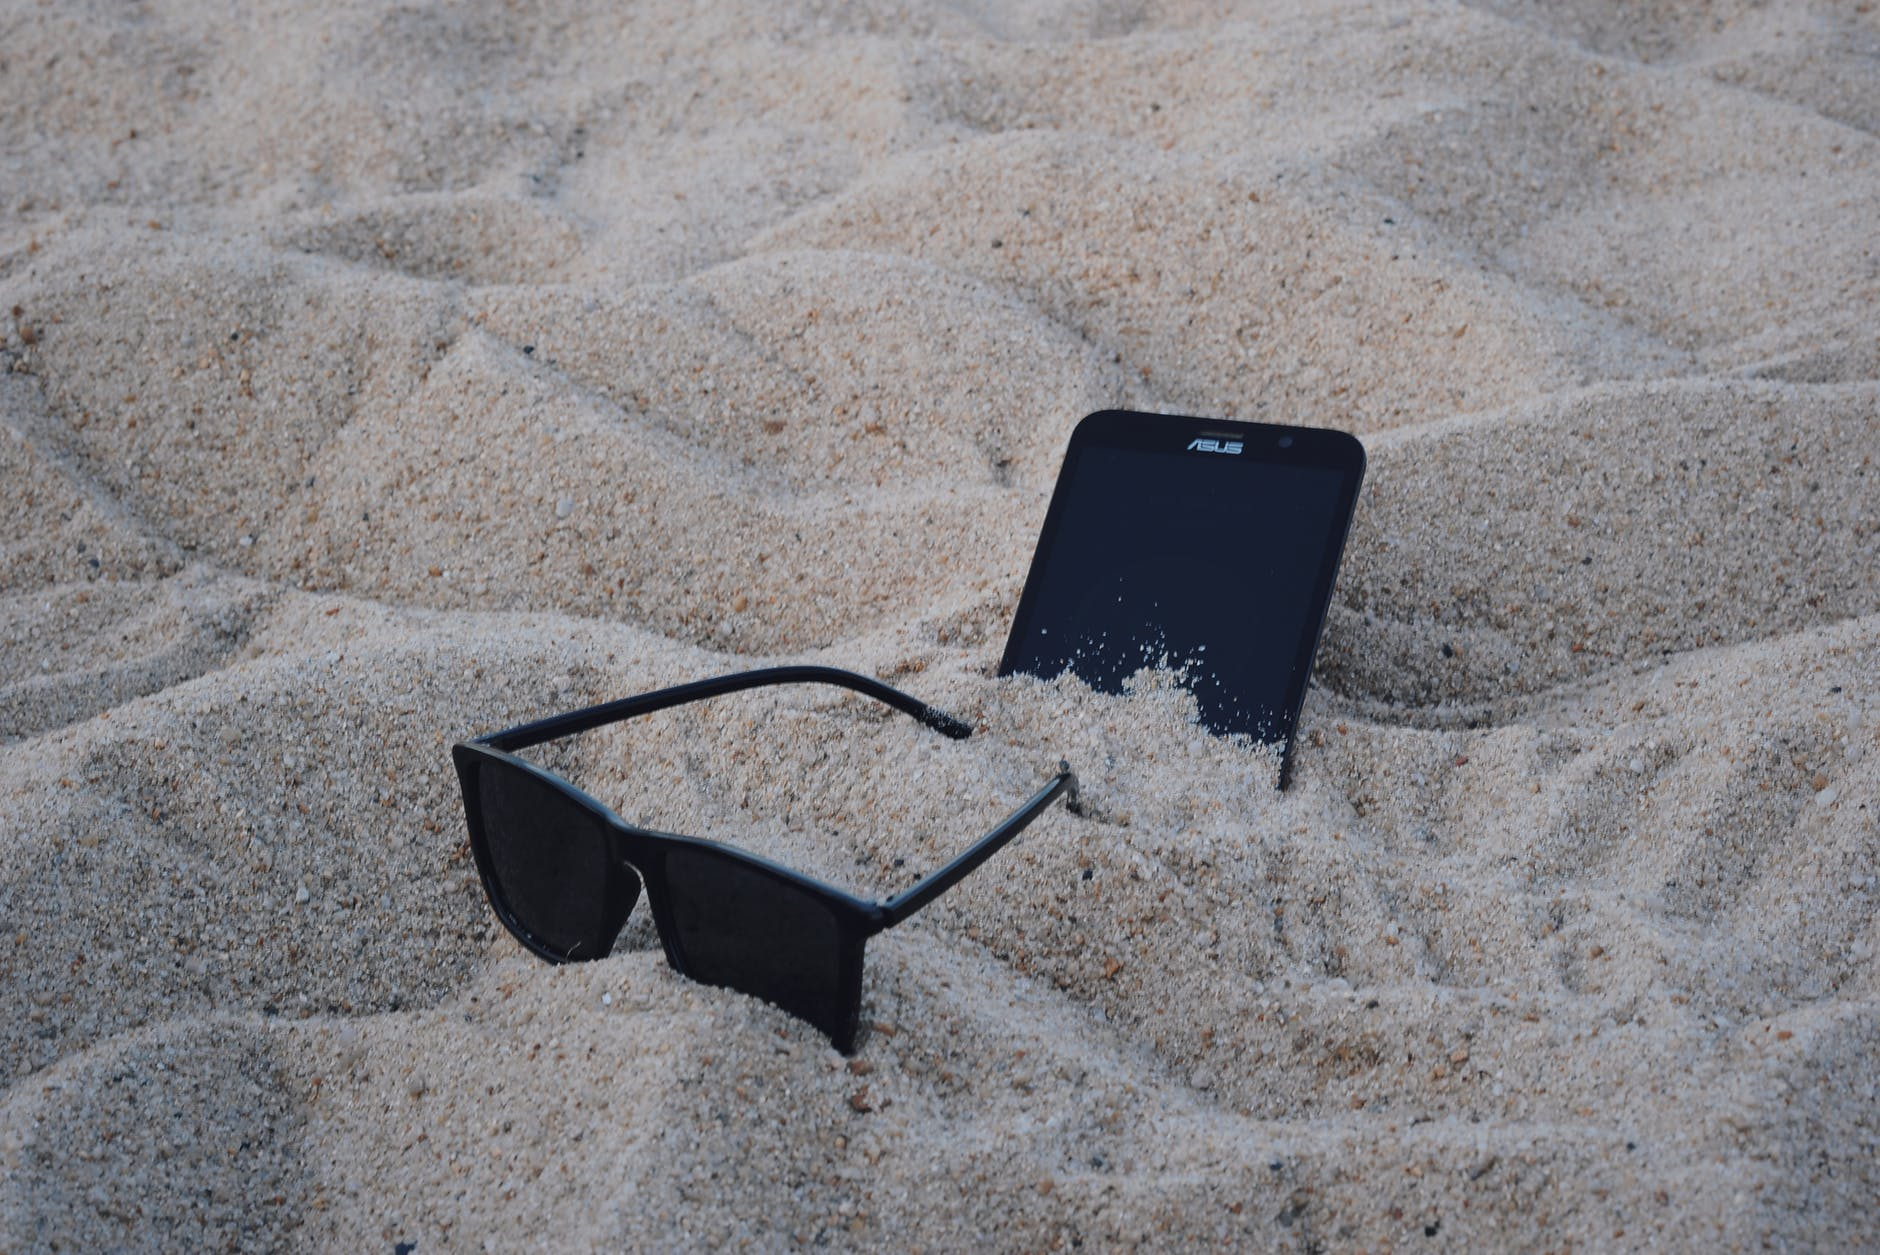 Black wayfarer-style sunglasses beside black asus android smartphone on brown sand photo